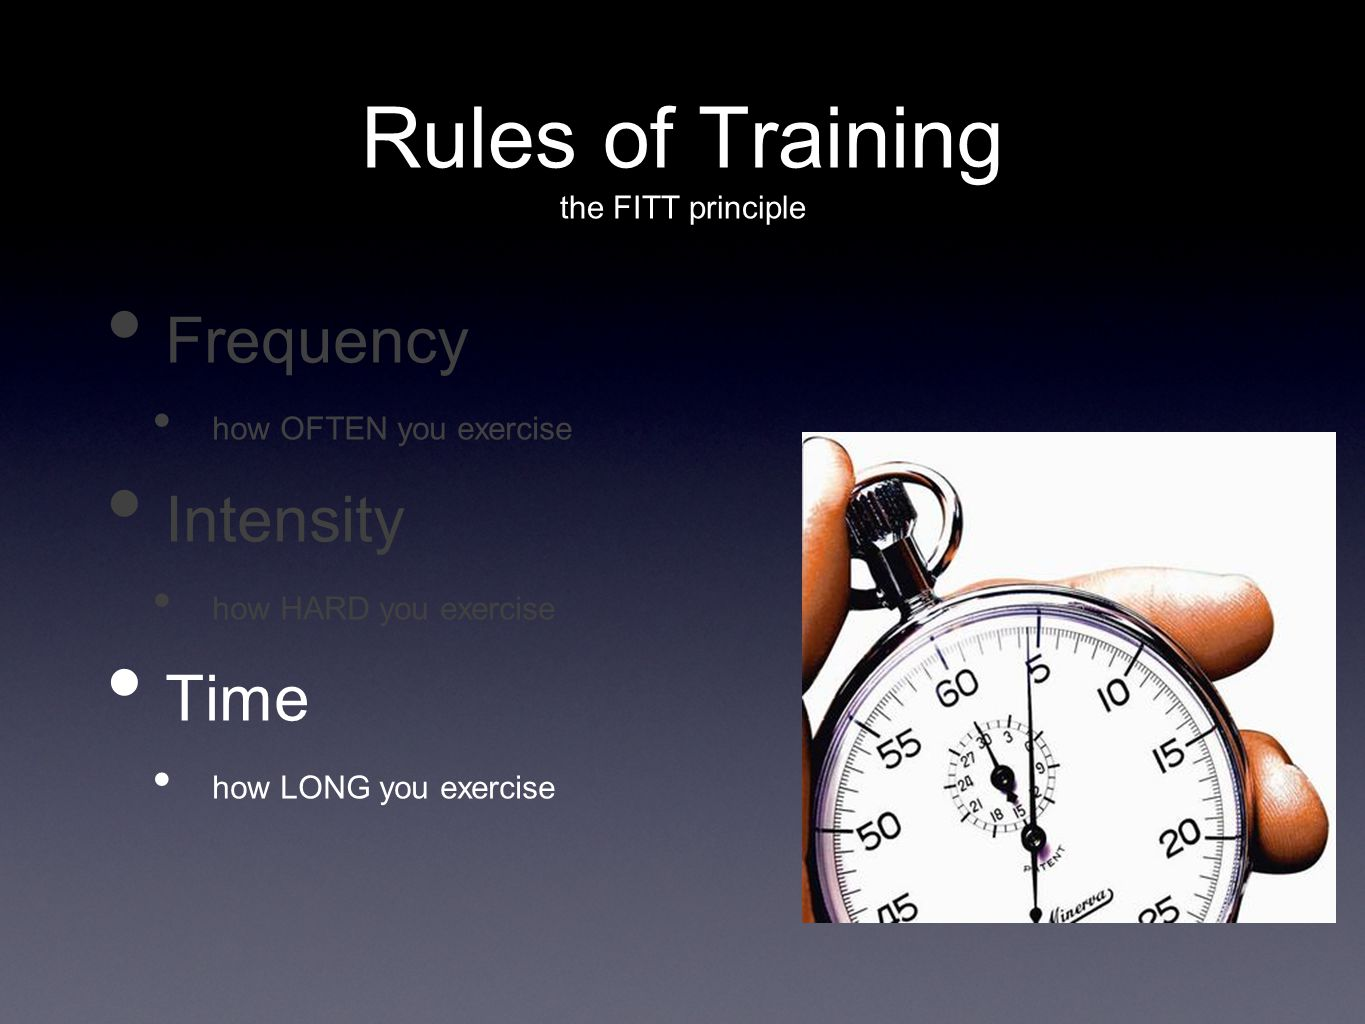 Rules of Training the FITT principle Frequency how OFTEN you exercise Intensity how HARD you exercise Time how LONG you exercise